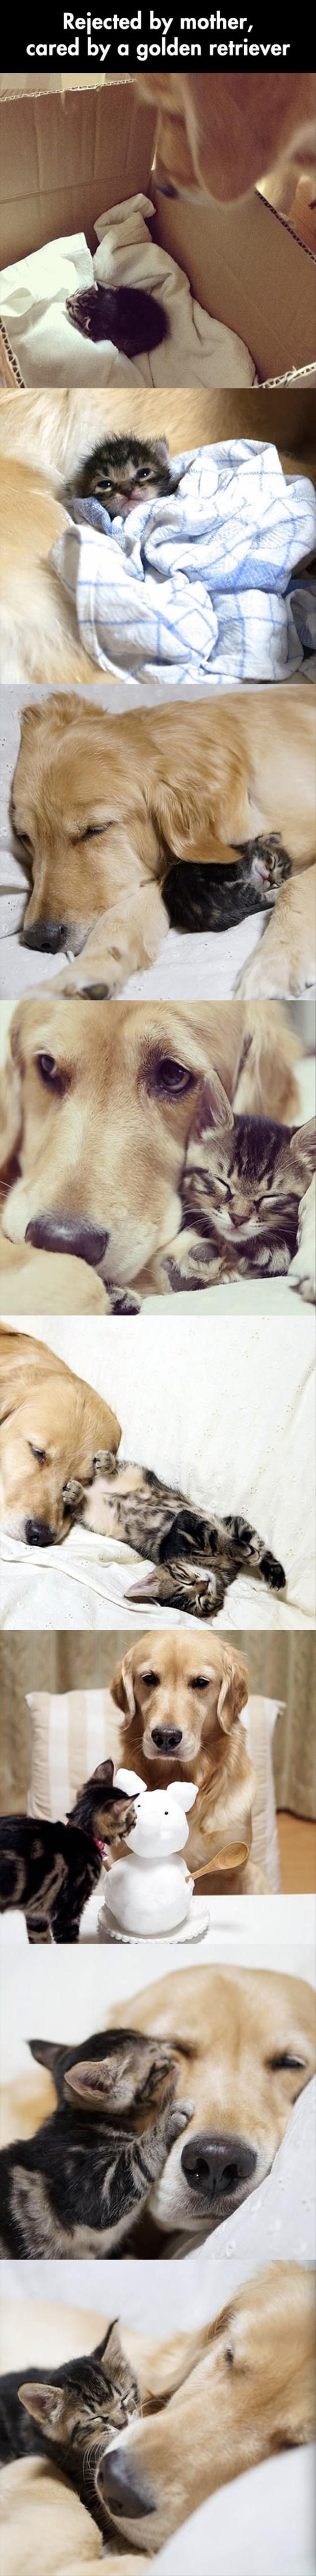 golden retriever takes care of cat-cutest thing ever!!!